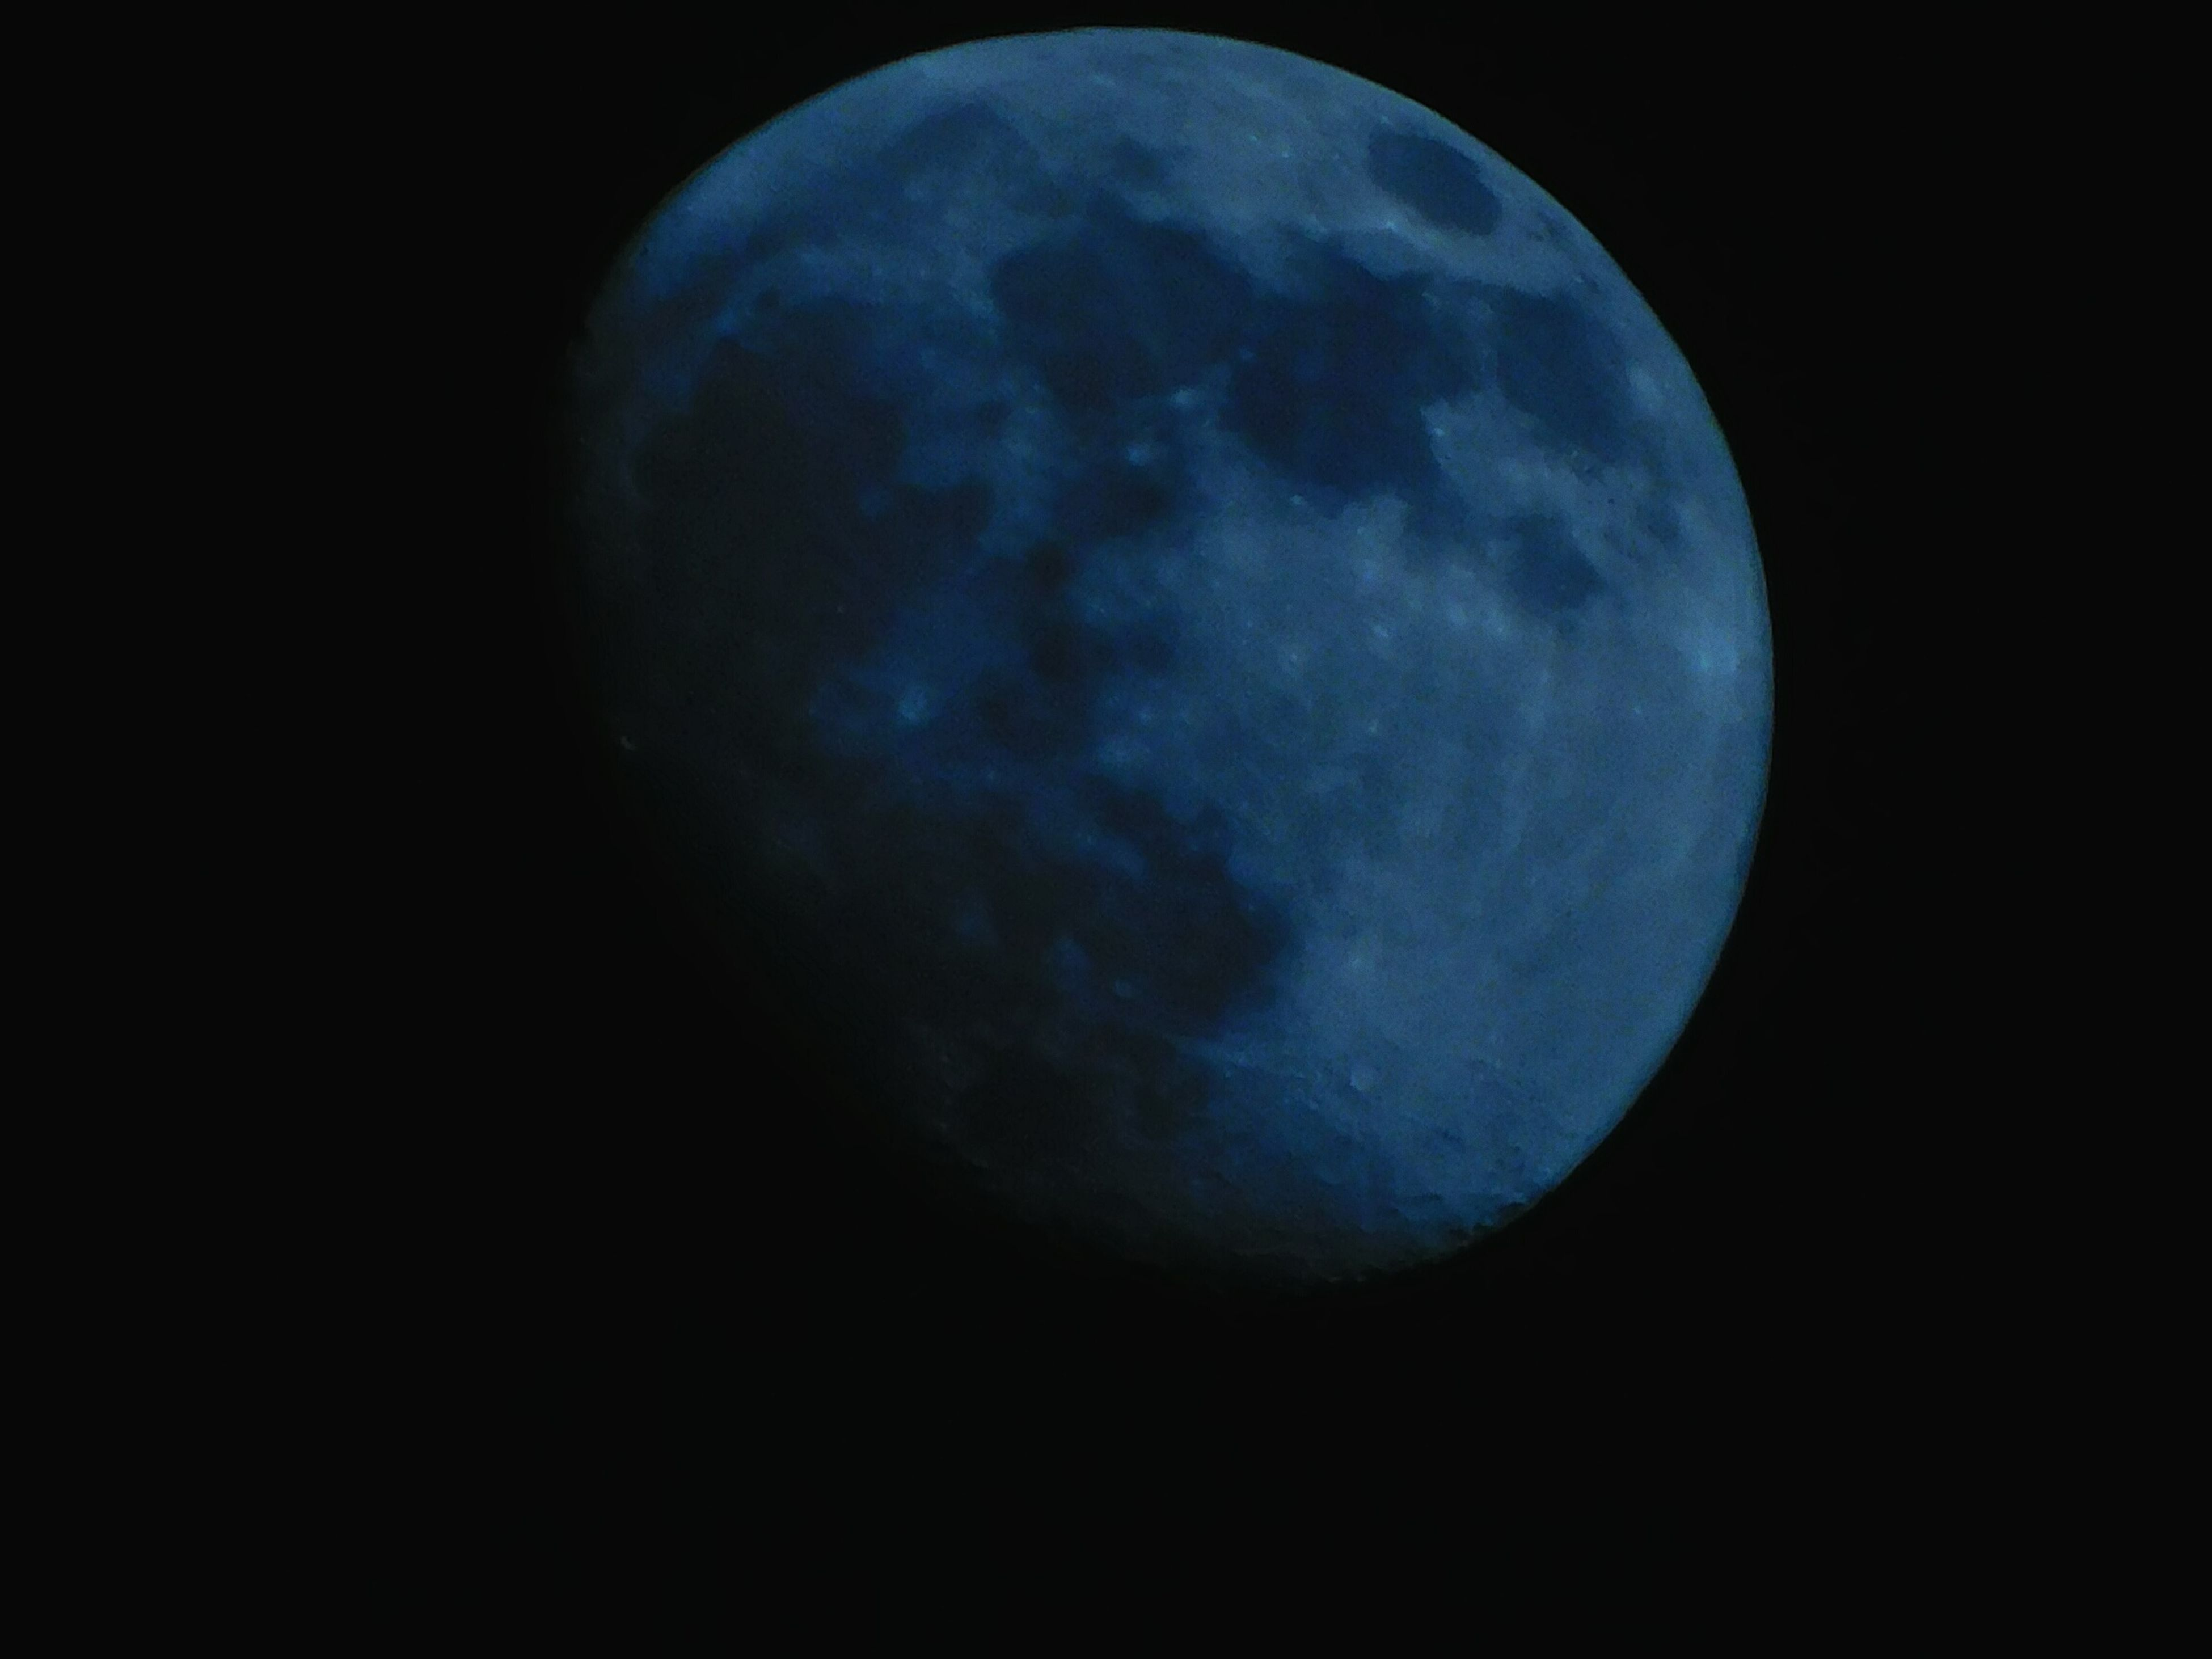 night, blue, nature, moon, astronomy, beauty in nature, no people, tranquility, outdoors, scenics, space, moon surface, black background, satellite view